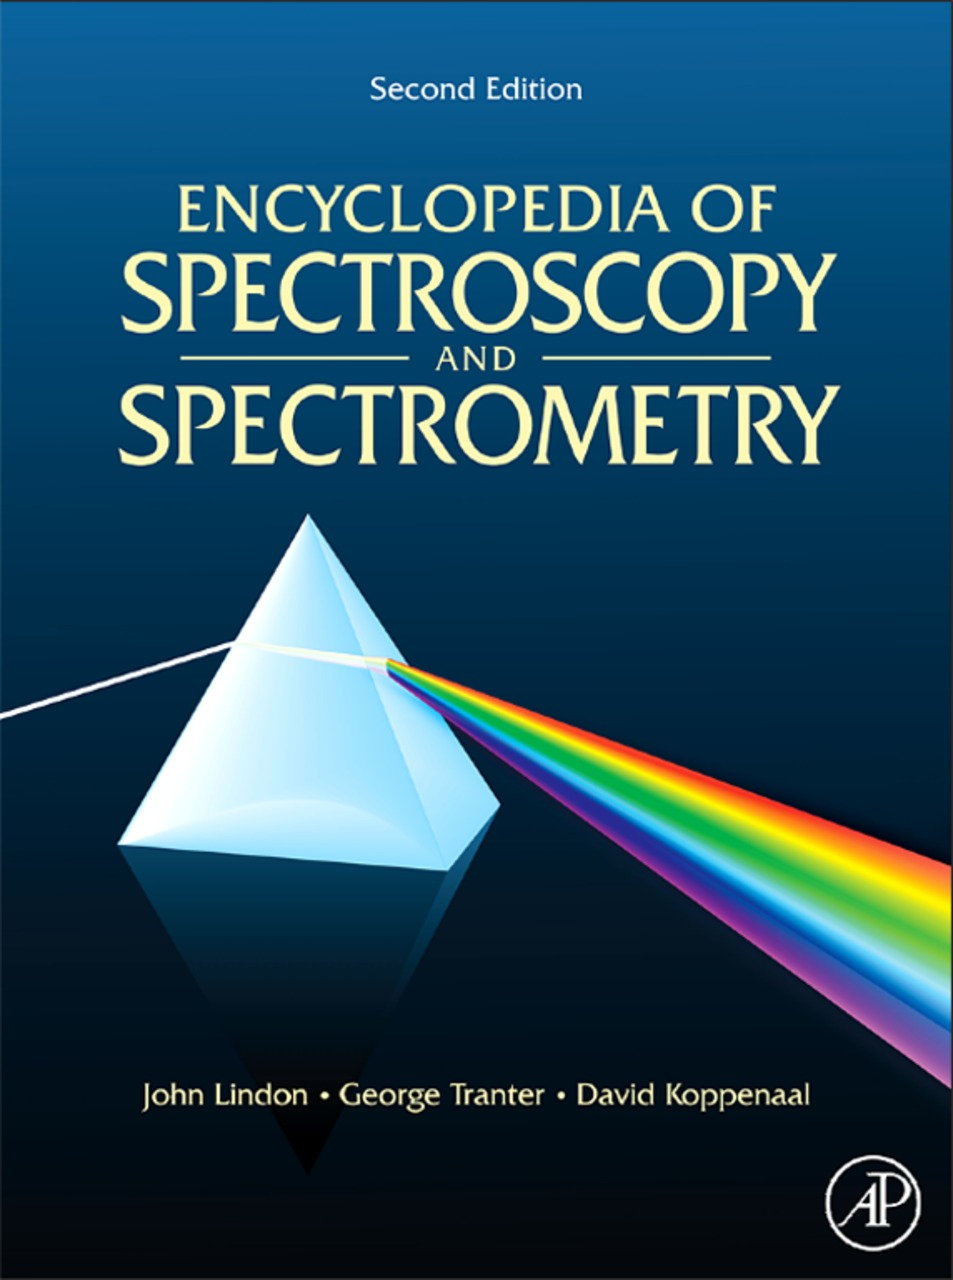 ONLINE Encyclopedia of Spectroscopy and Spectrometry,  2nd Edition 3 volume set